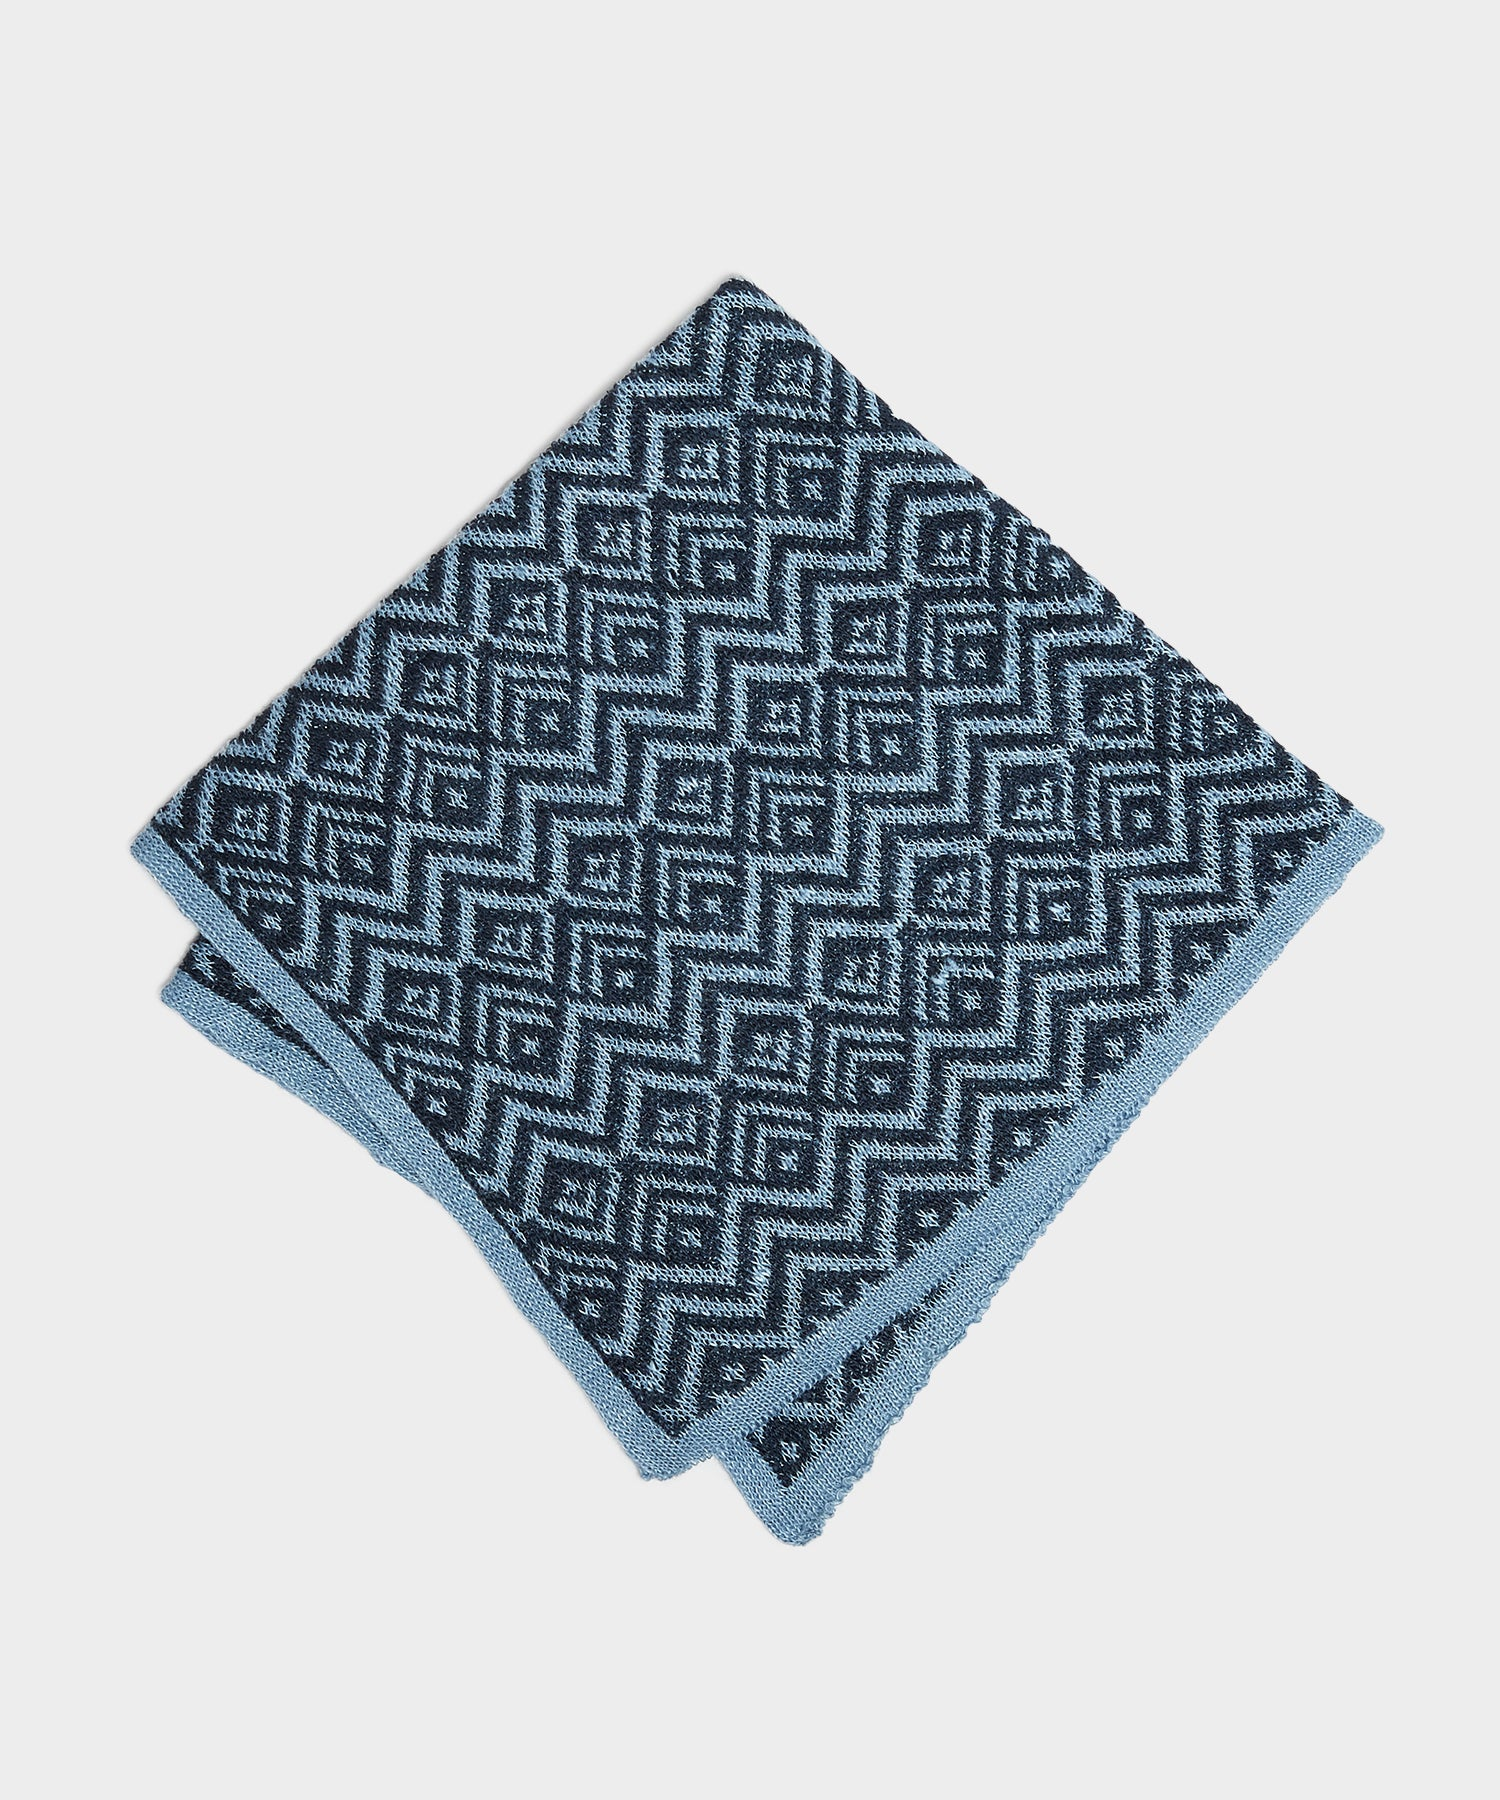 Mungai Jaquard Pocket Square in Blue